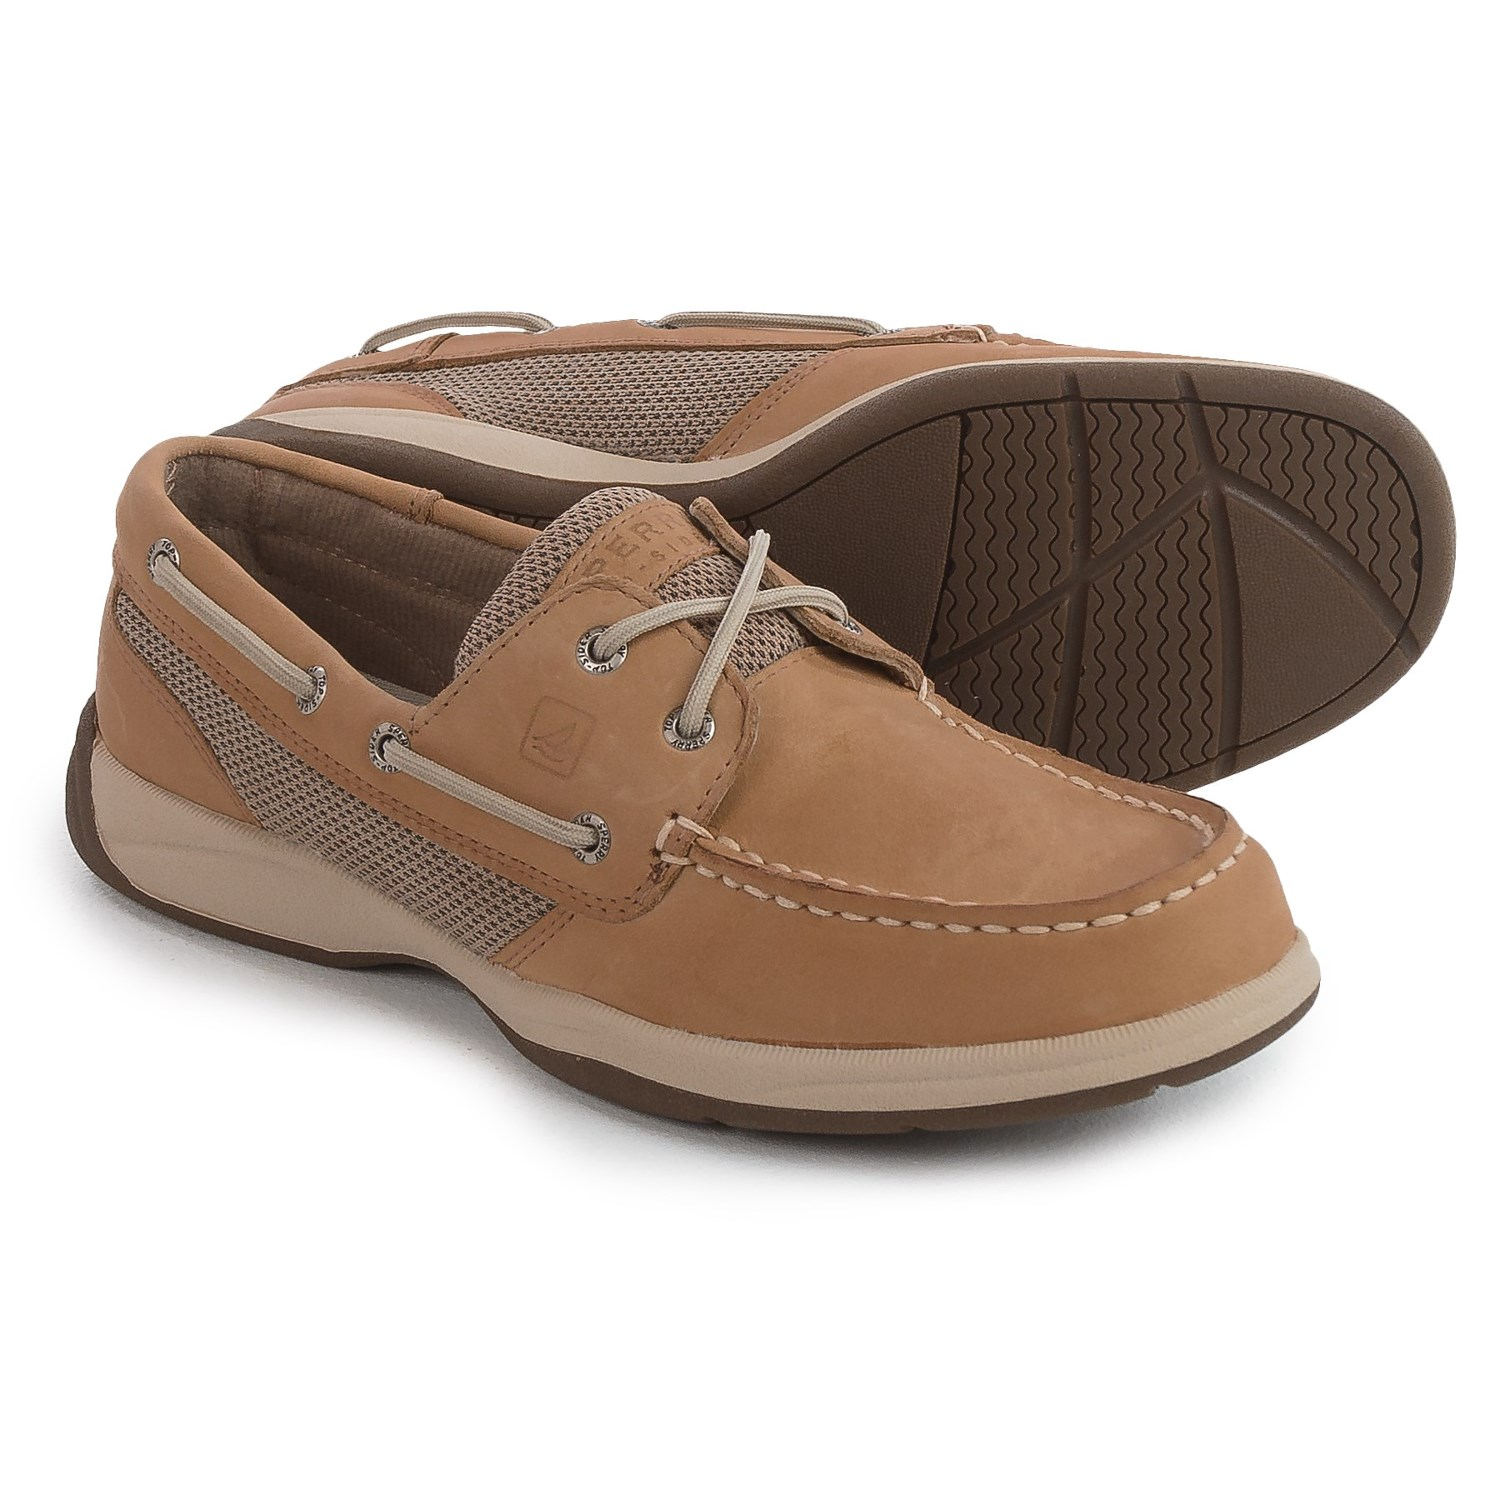 Sperry Sale. Elevate your sea-worthy style for less with Sperry sale and clearance shoes, clothing, and accessories. The Sperry sale collection has something for men, women, and kids with adventurous spirits and sea-inspired style.